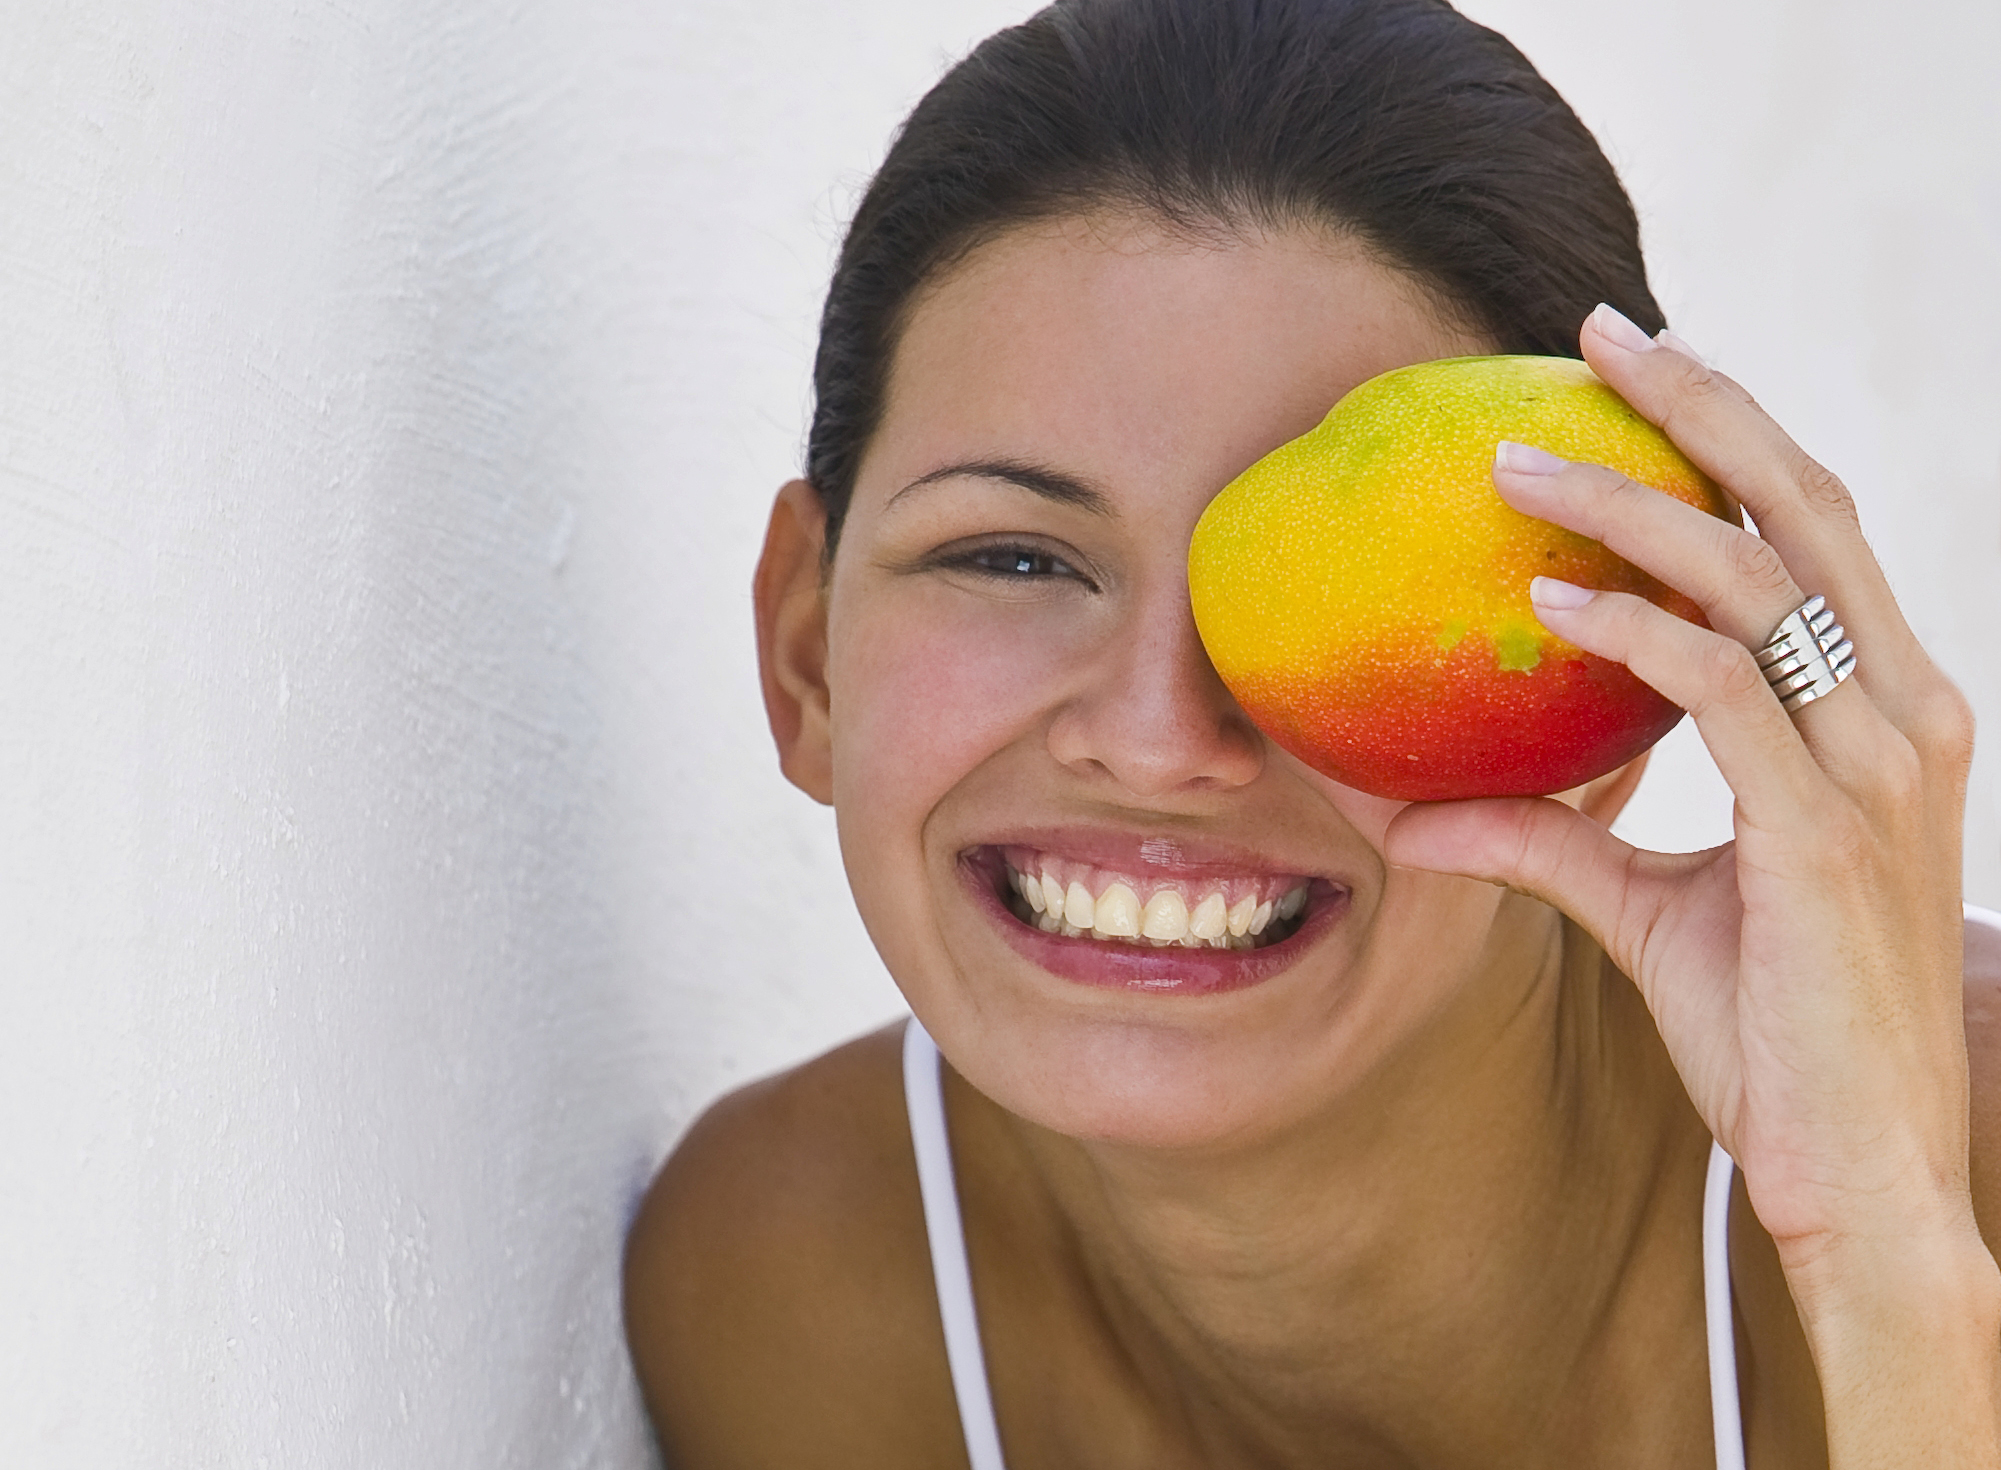 Woman holding mango in front of face outdoors, smiling, portrait